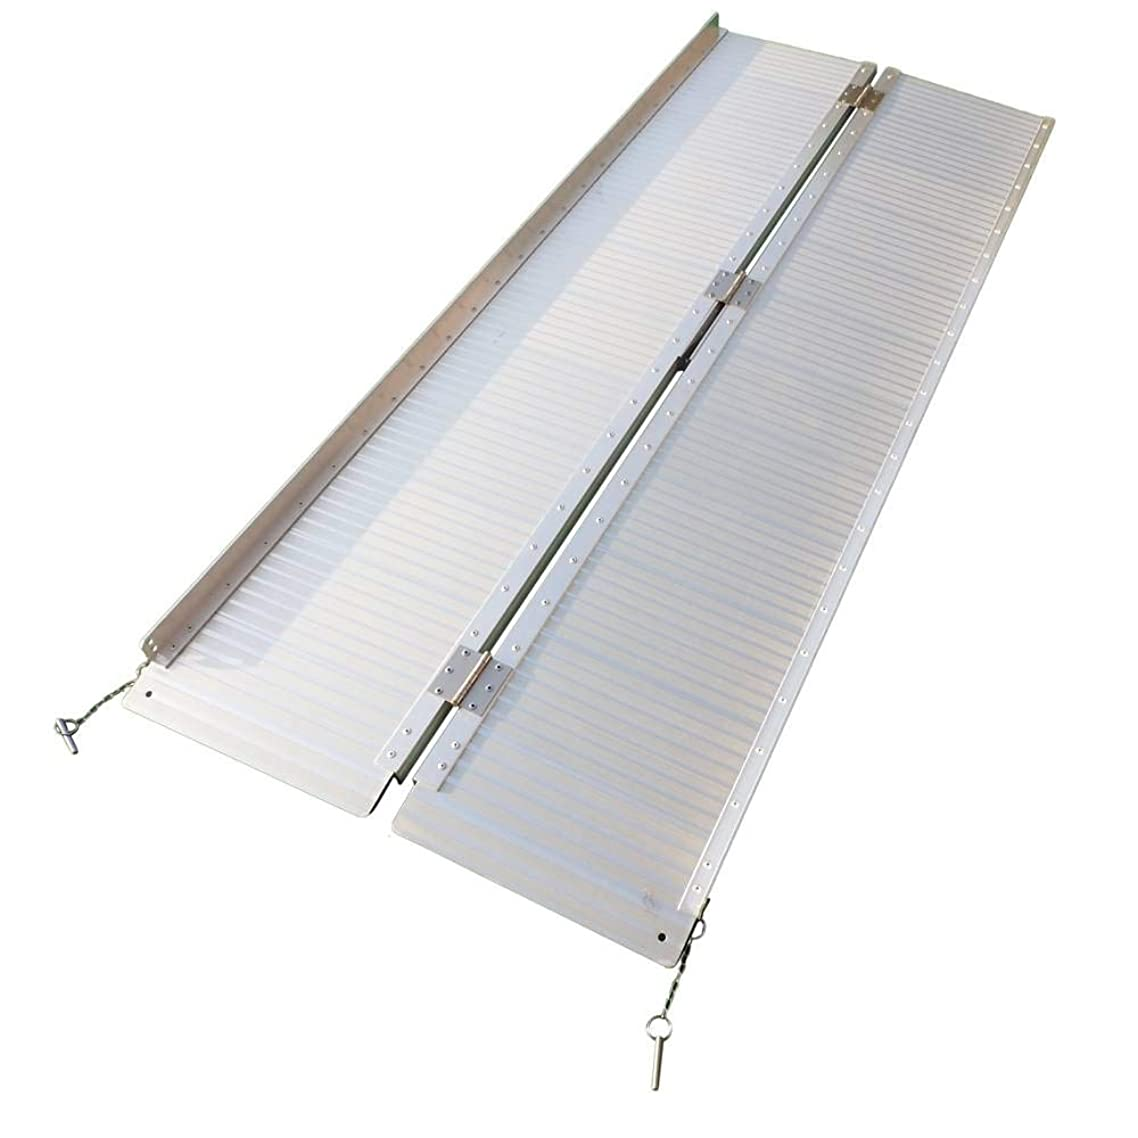 Binlin Threshold Ramps,2'-10' Portable Folding Aluminum Wheelchair Threshold Ramp with Ribbed Surface and Carrying Handle